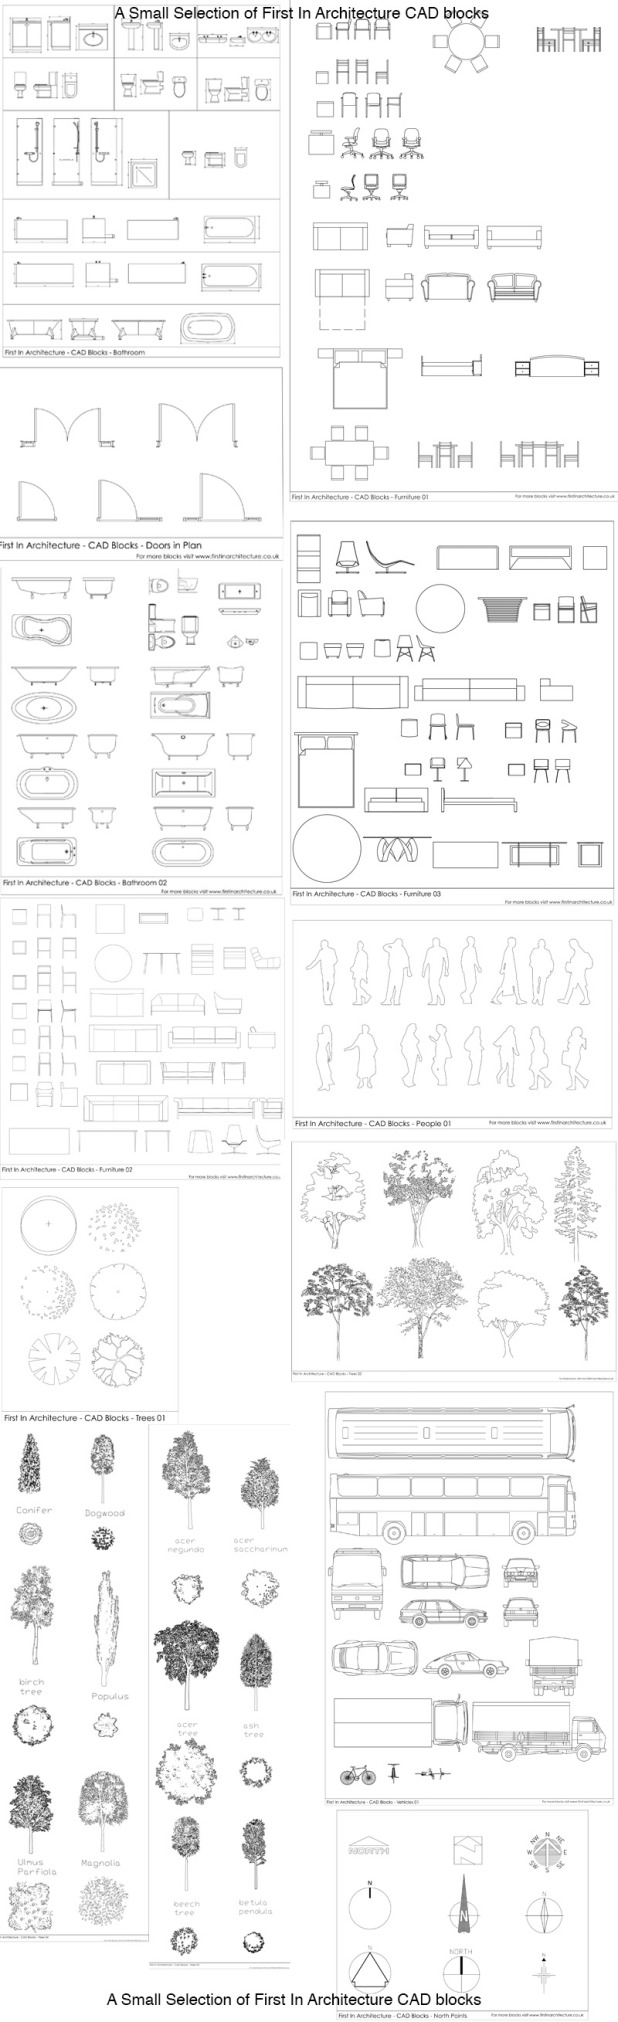 best images about mapicons on pinterest warhammer k lotr